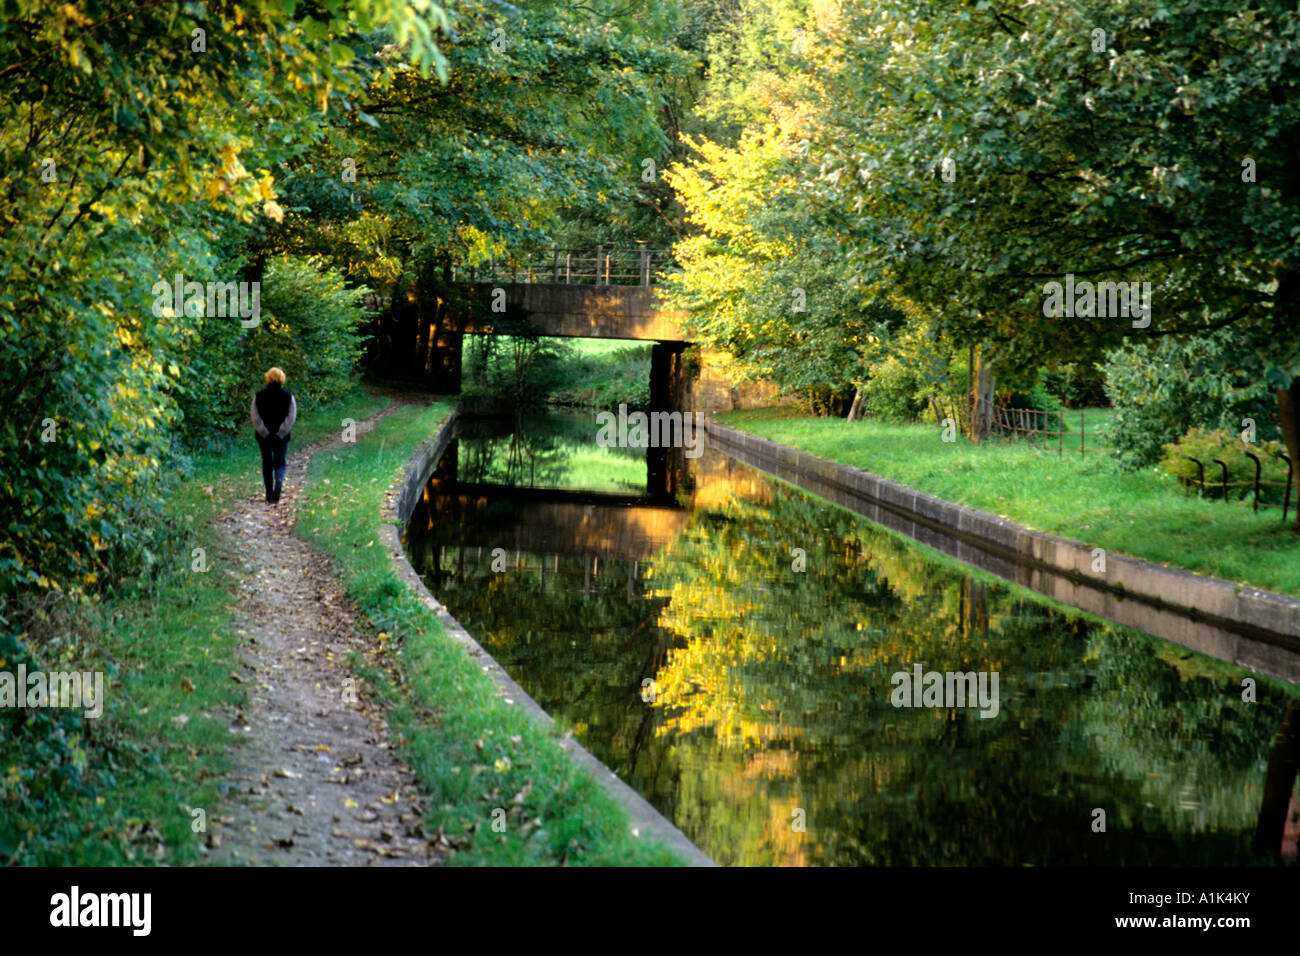 Woman walks the towpath along a narrow canal in Llangollen Wales, Great Britain - Stock Image